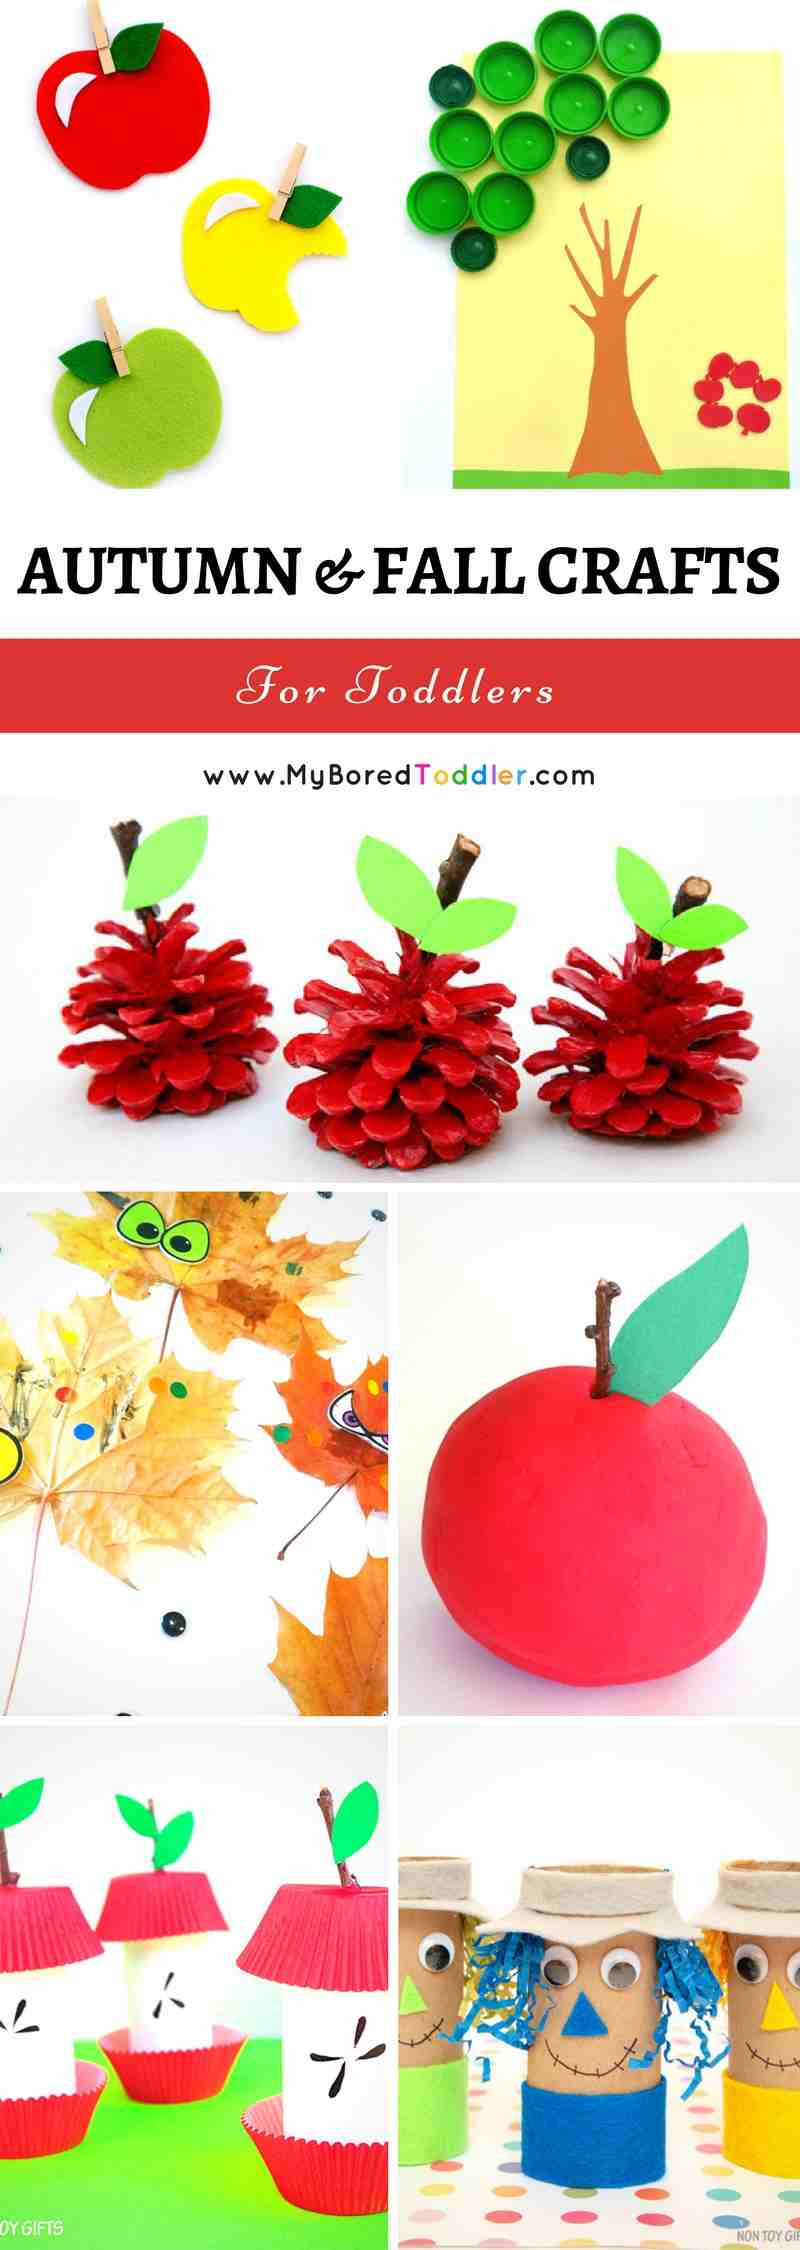 autumn-fall-crafts-for-toddlers-pinterest